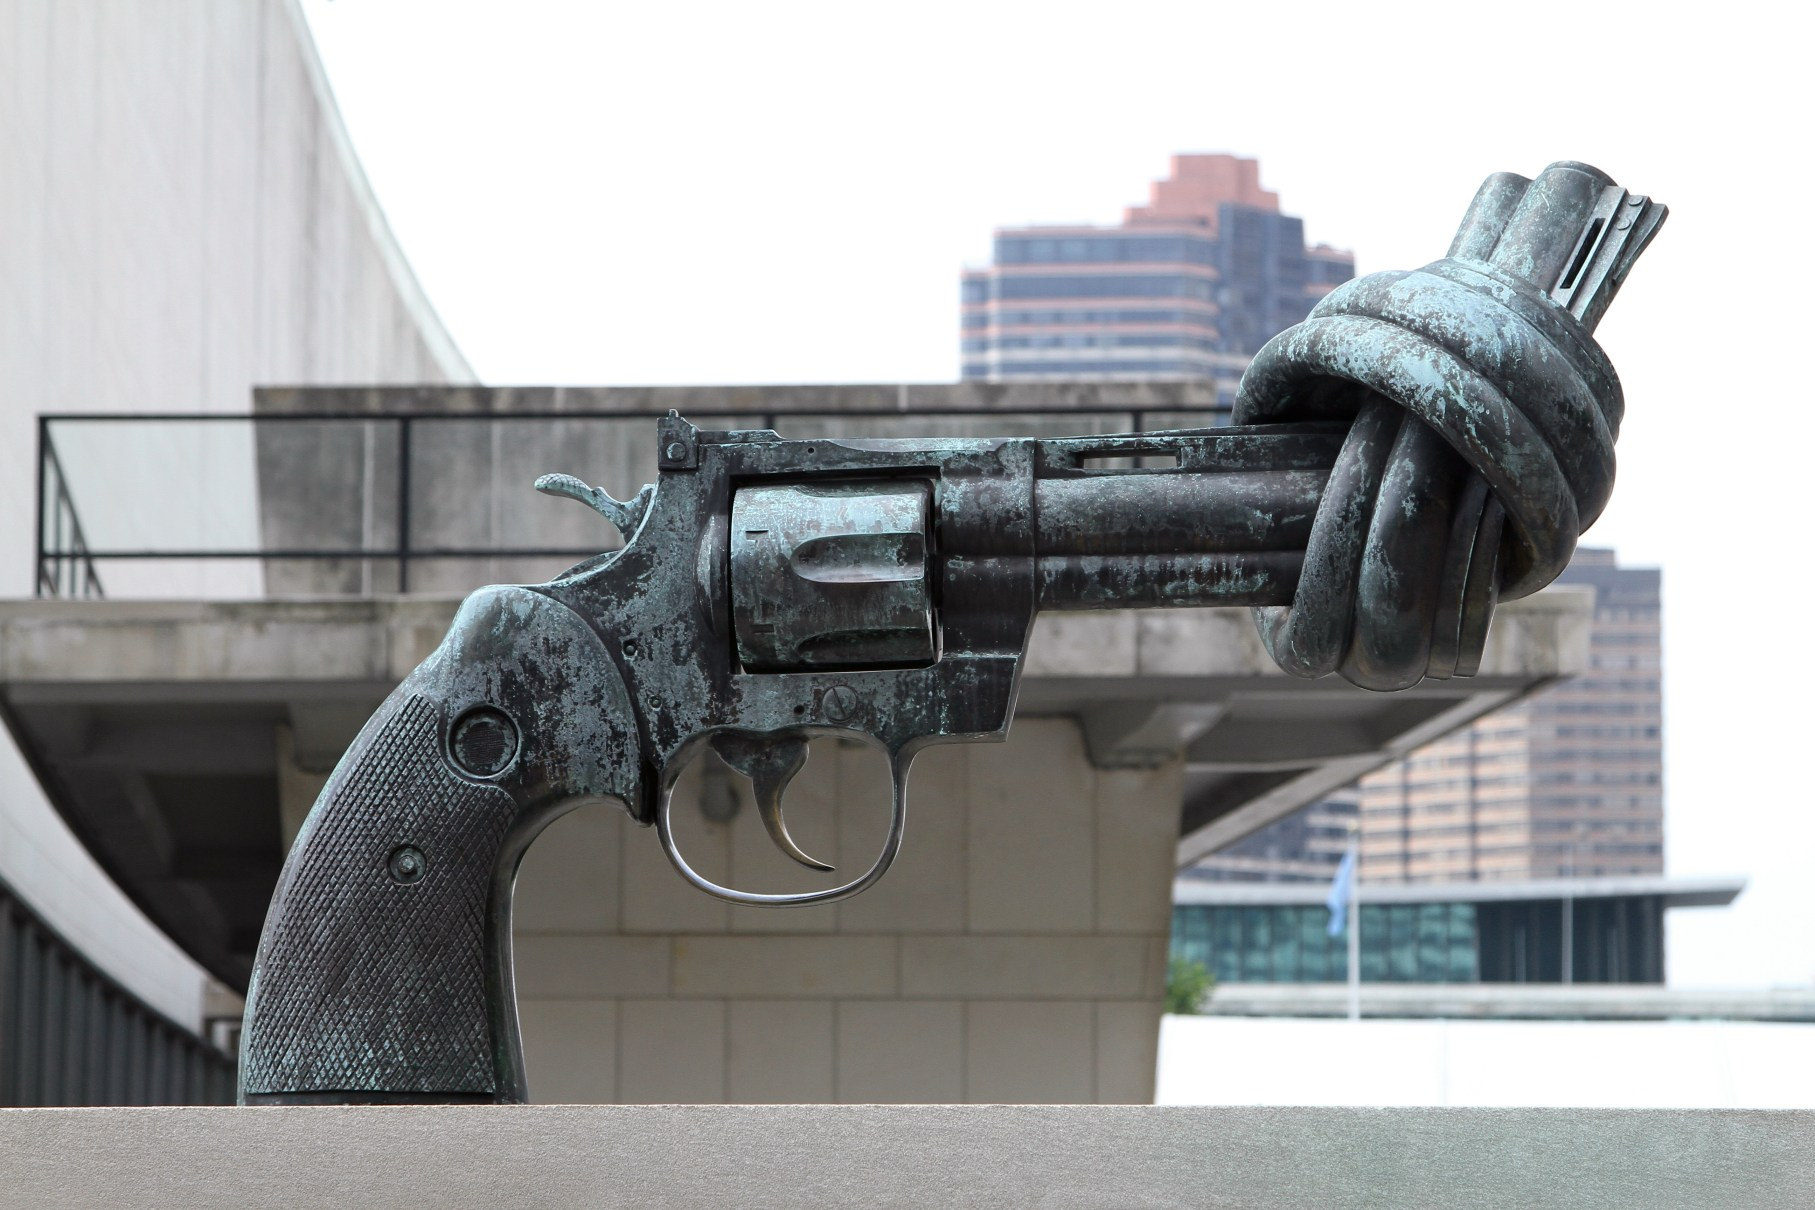 Abortion, Gun Control And the Inconsistency of the Personal Choice Narrative